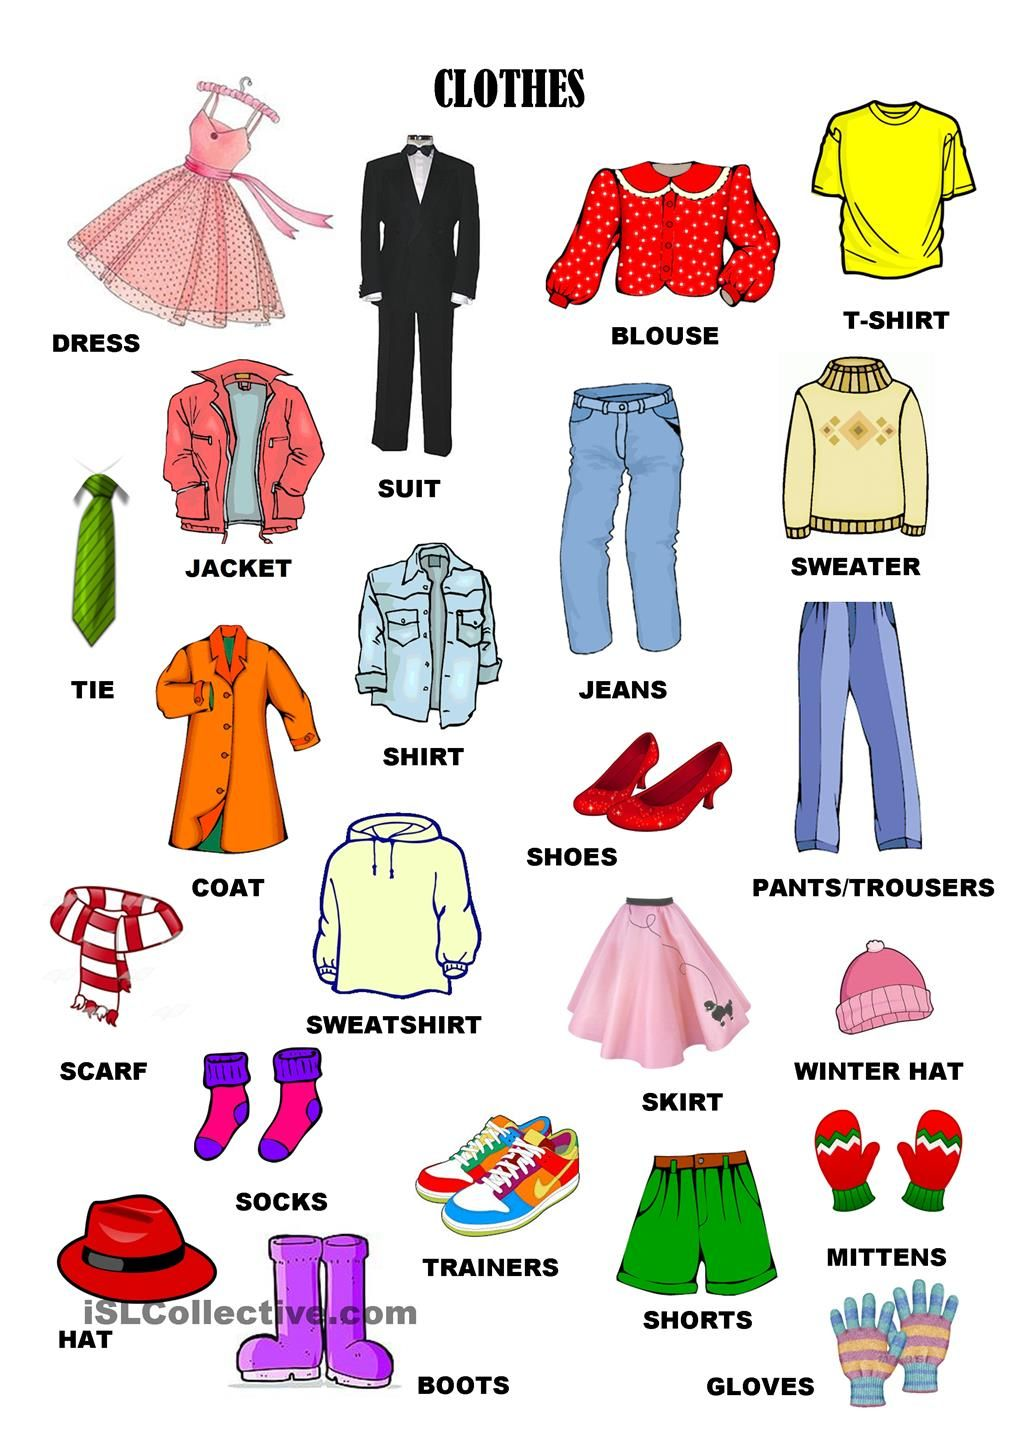 Clothes, accesories and details *7pages* (With images